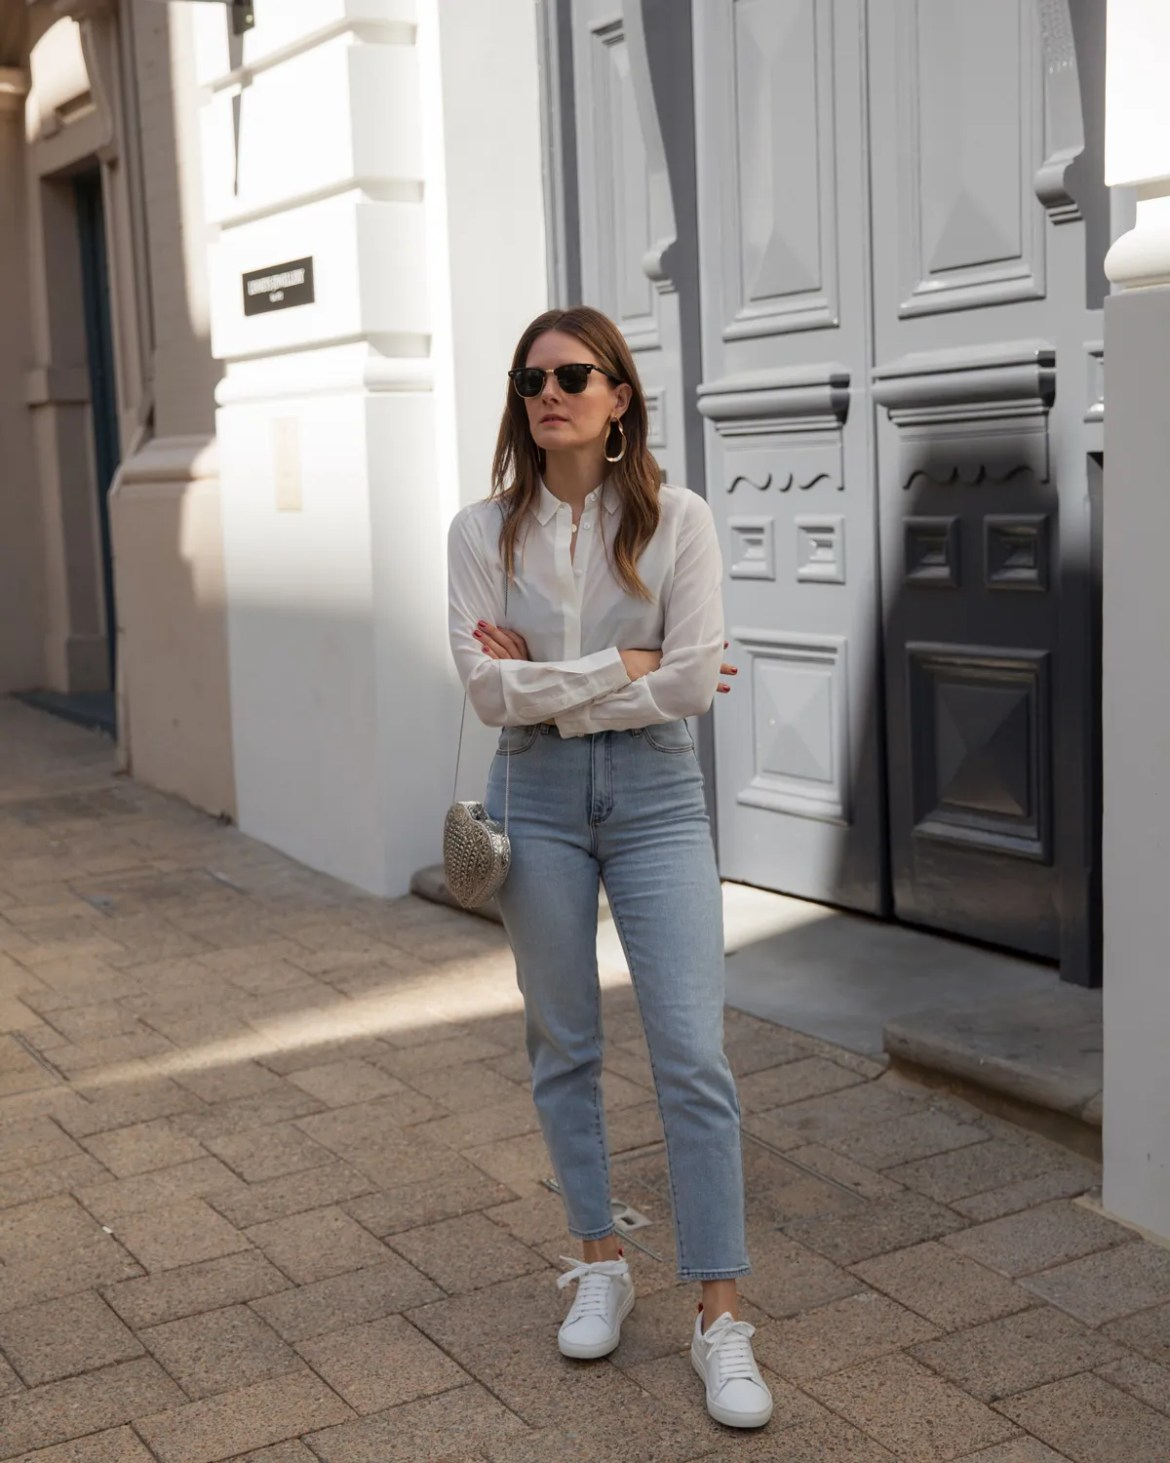 Boden silk shirt and white sneakers worn by Inspiring Wit blogger Jenelle Witty